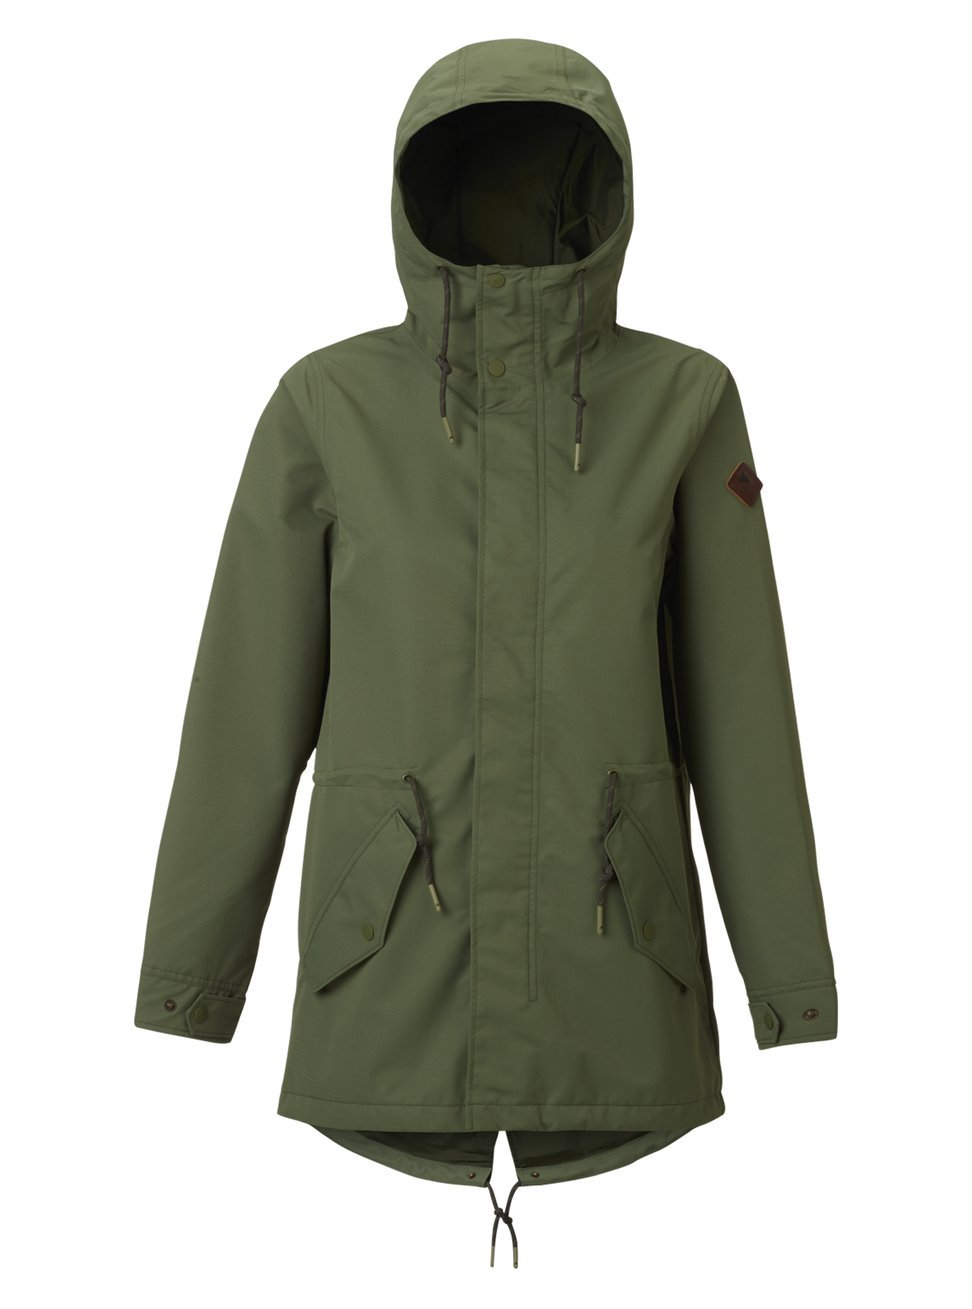 Burton Women's Sadie Jacket, Clover, Large by Burton